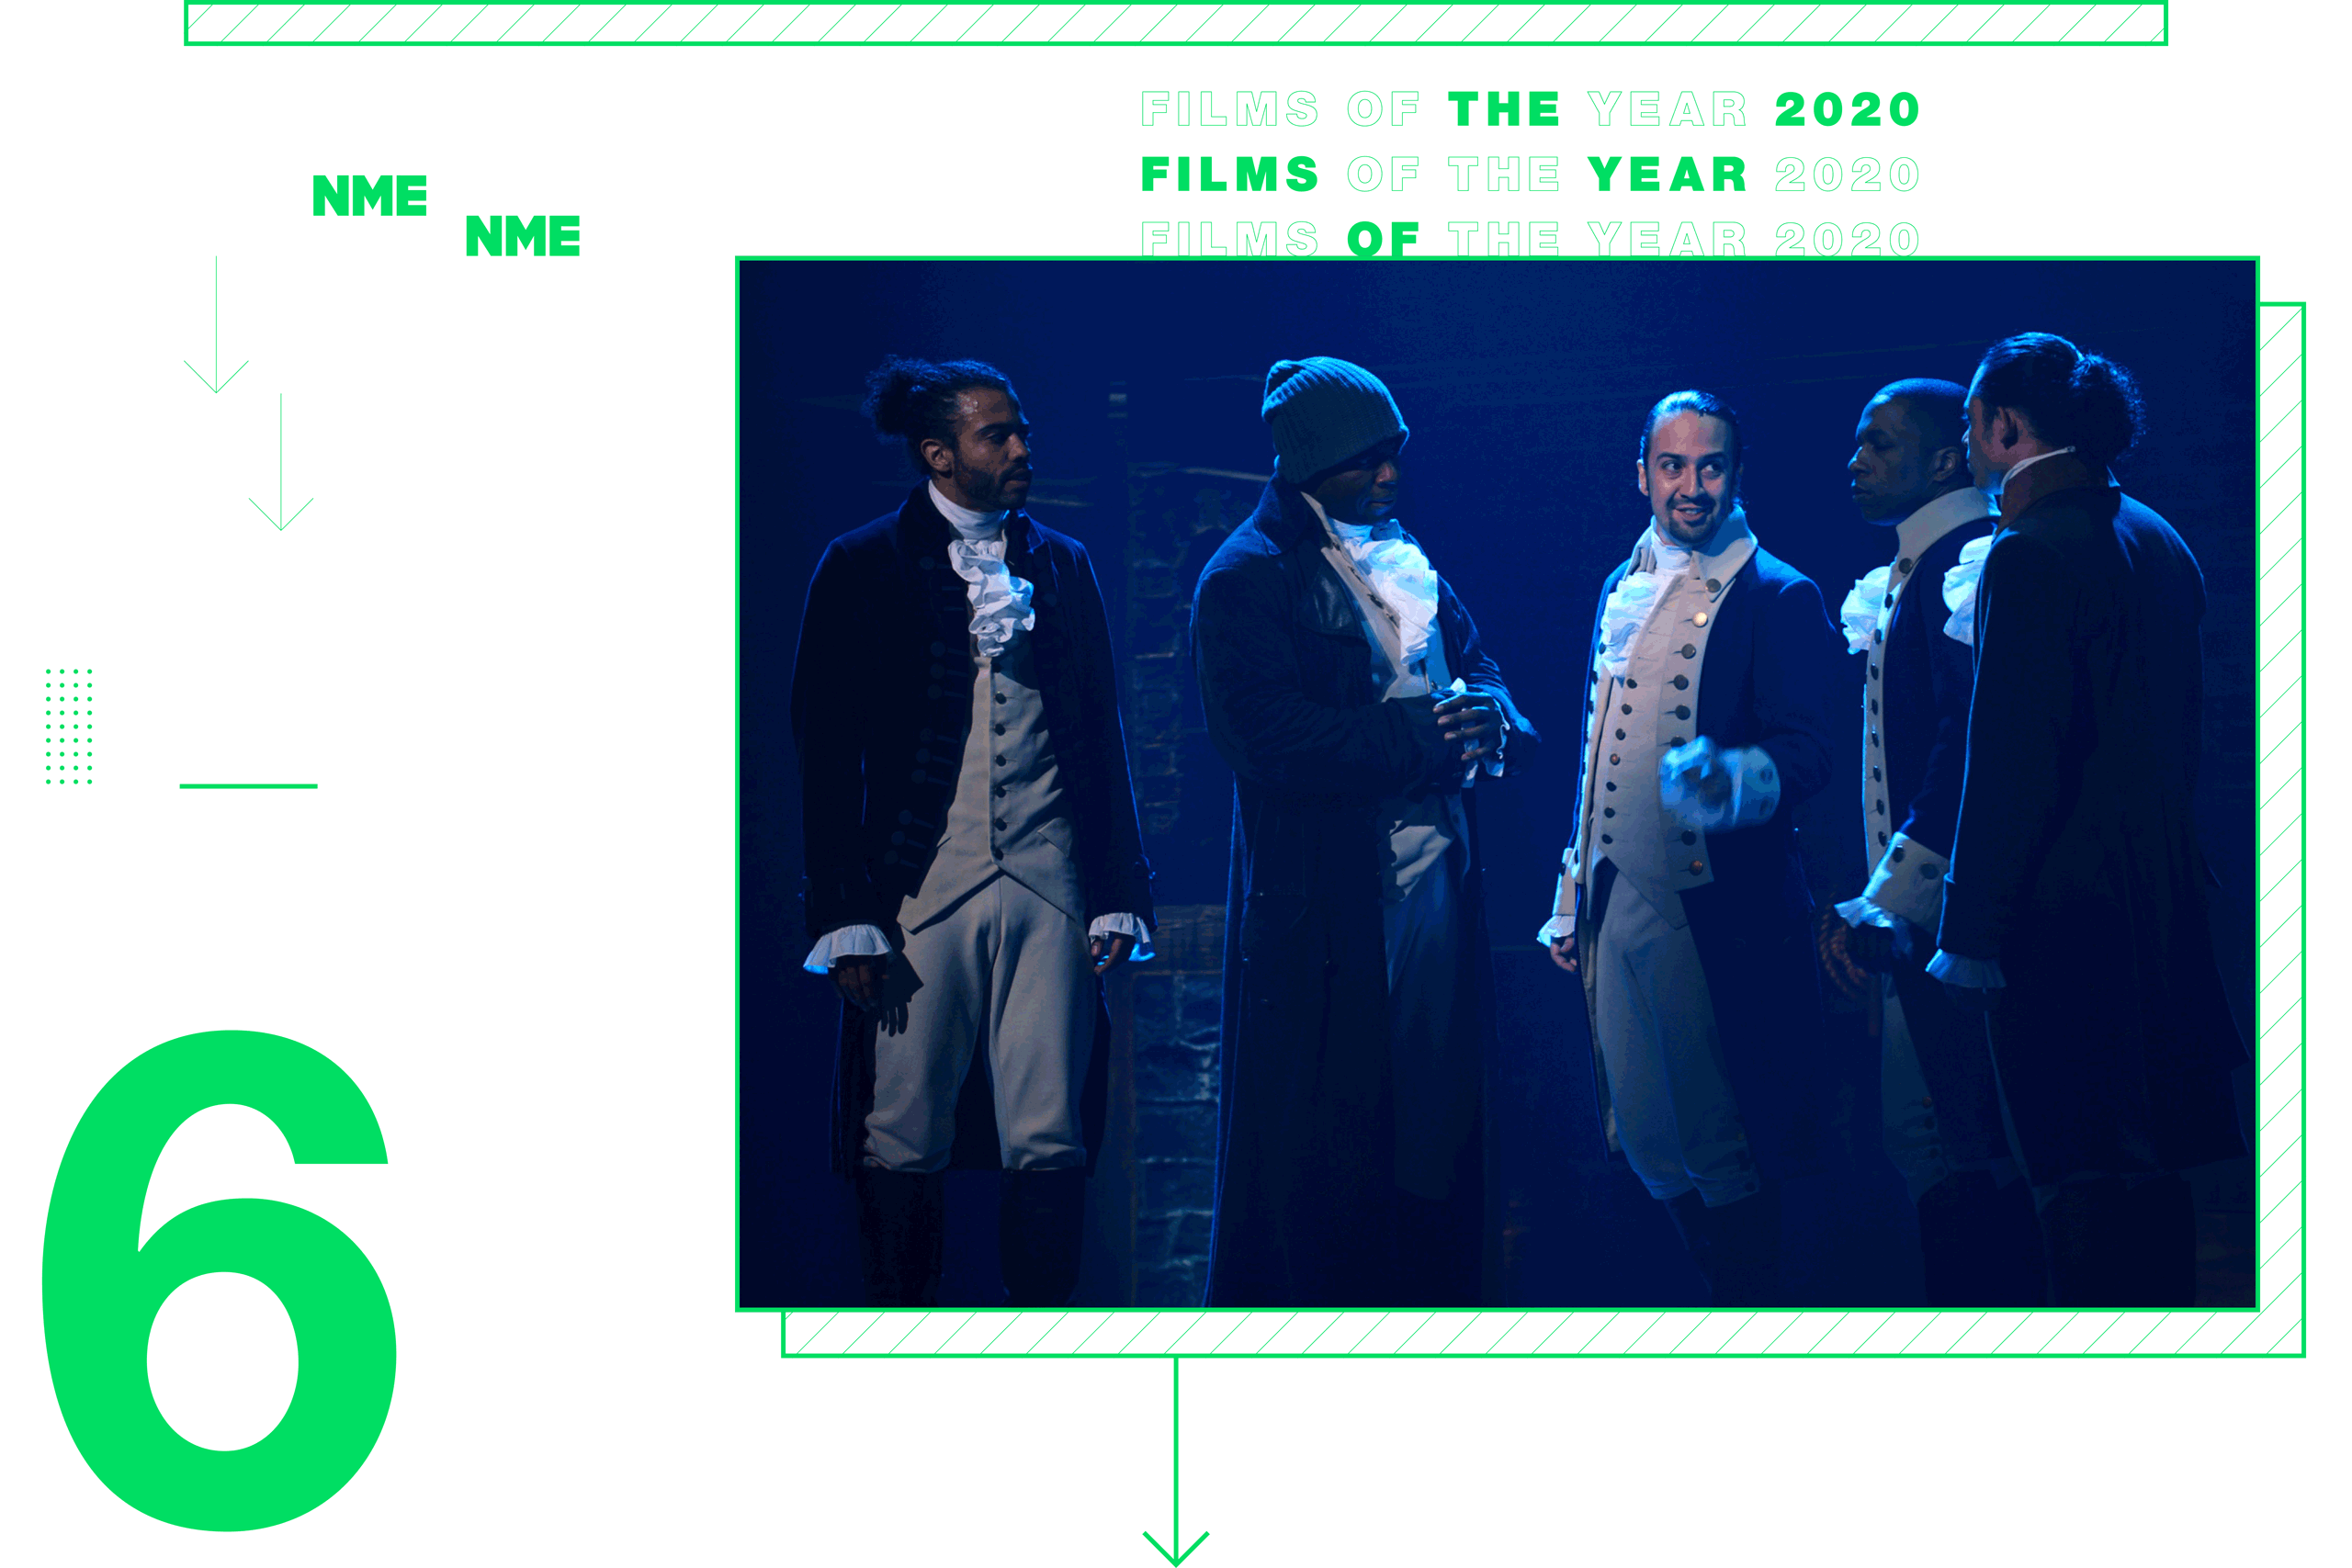 NME Global Films of the Year Hamilton